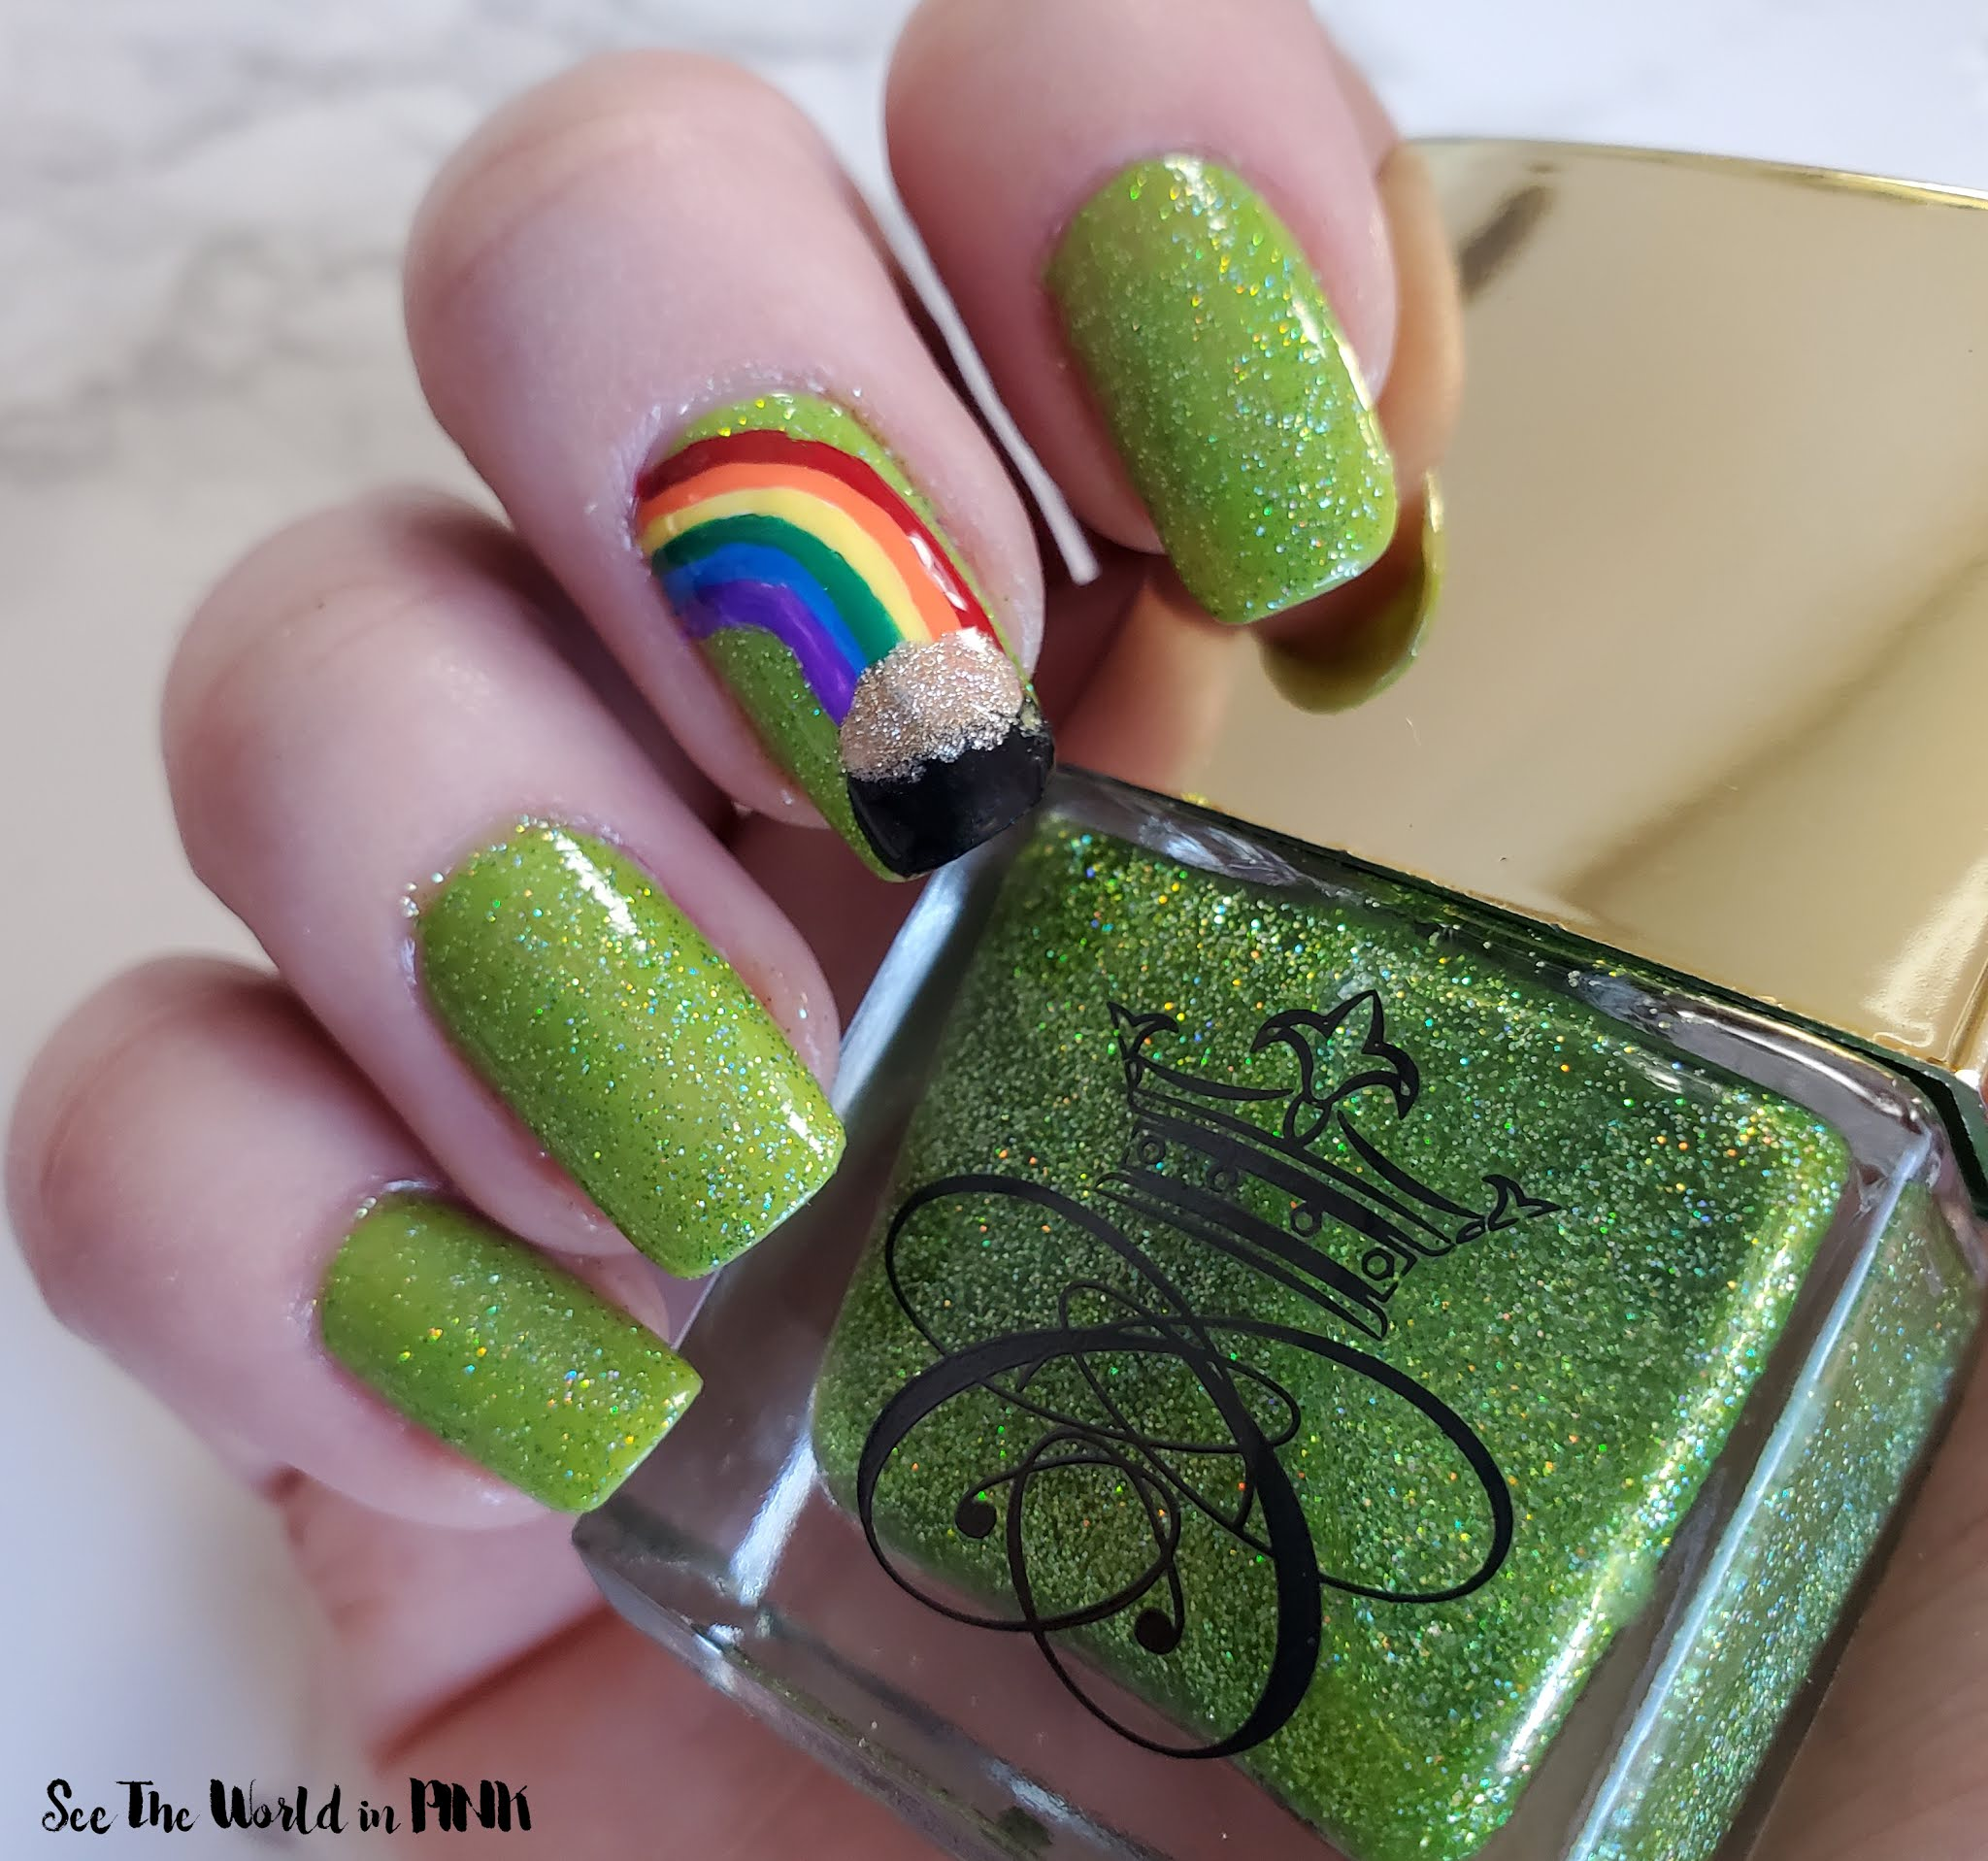 Manicure Monday - Pot of Gold Nails